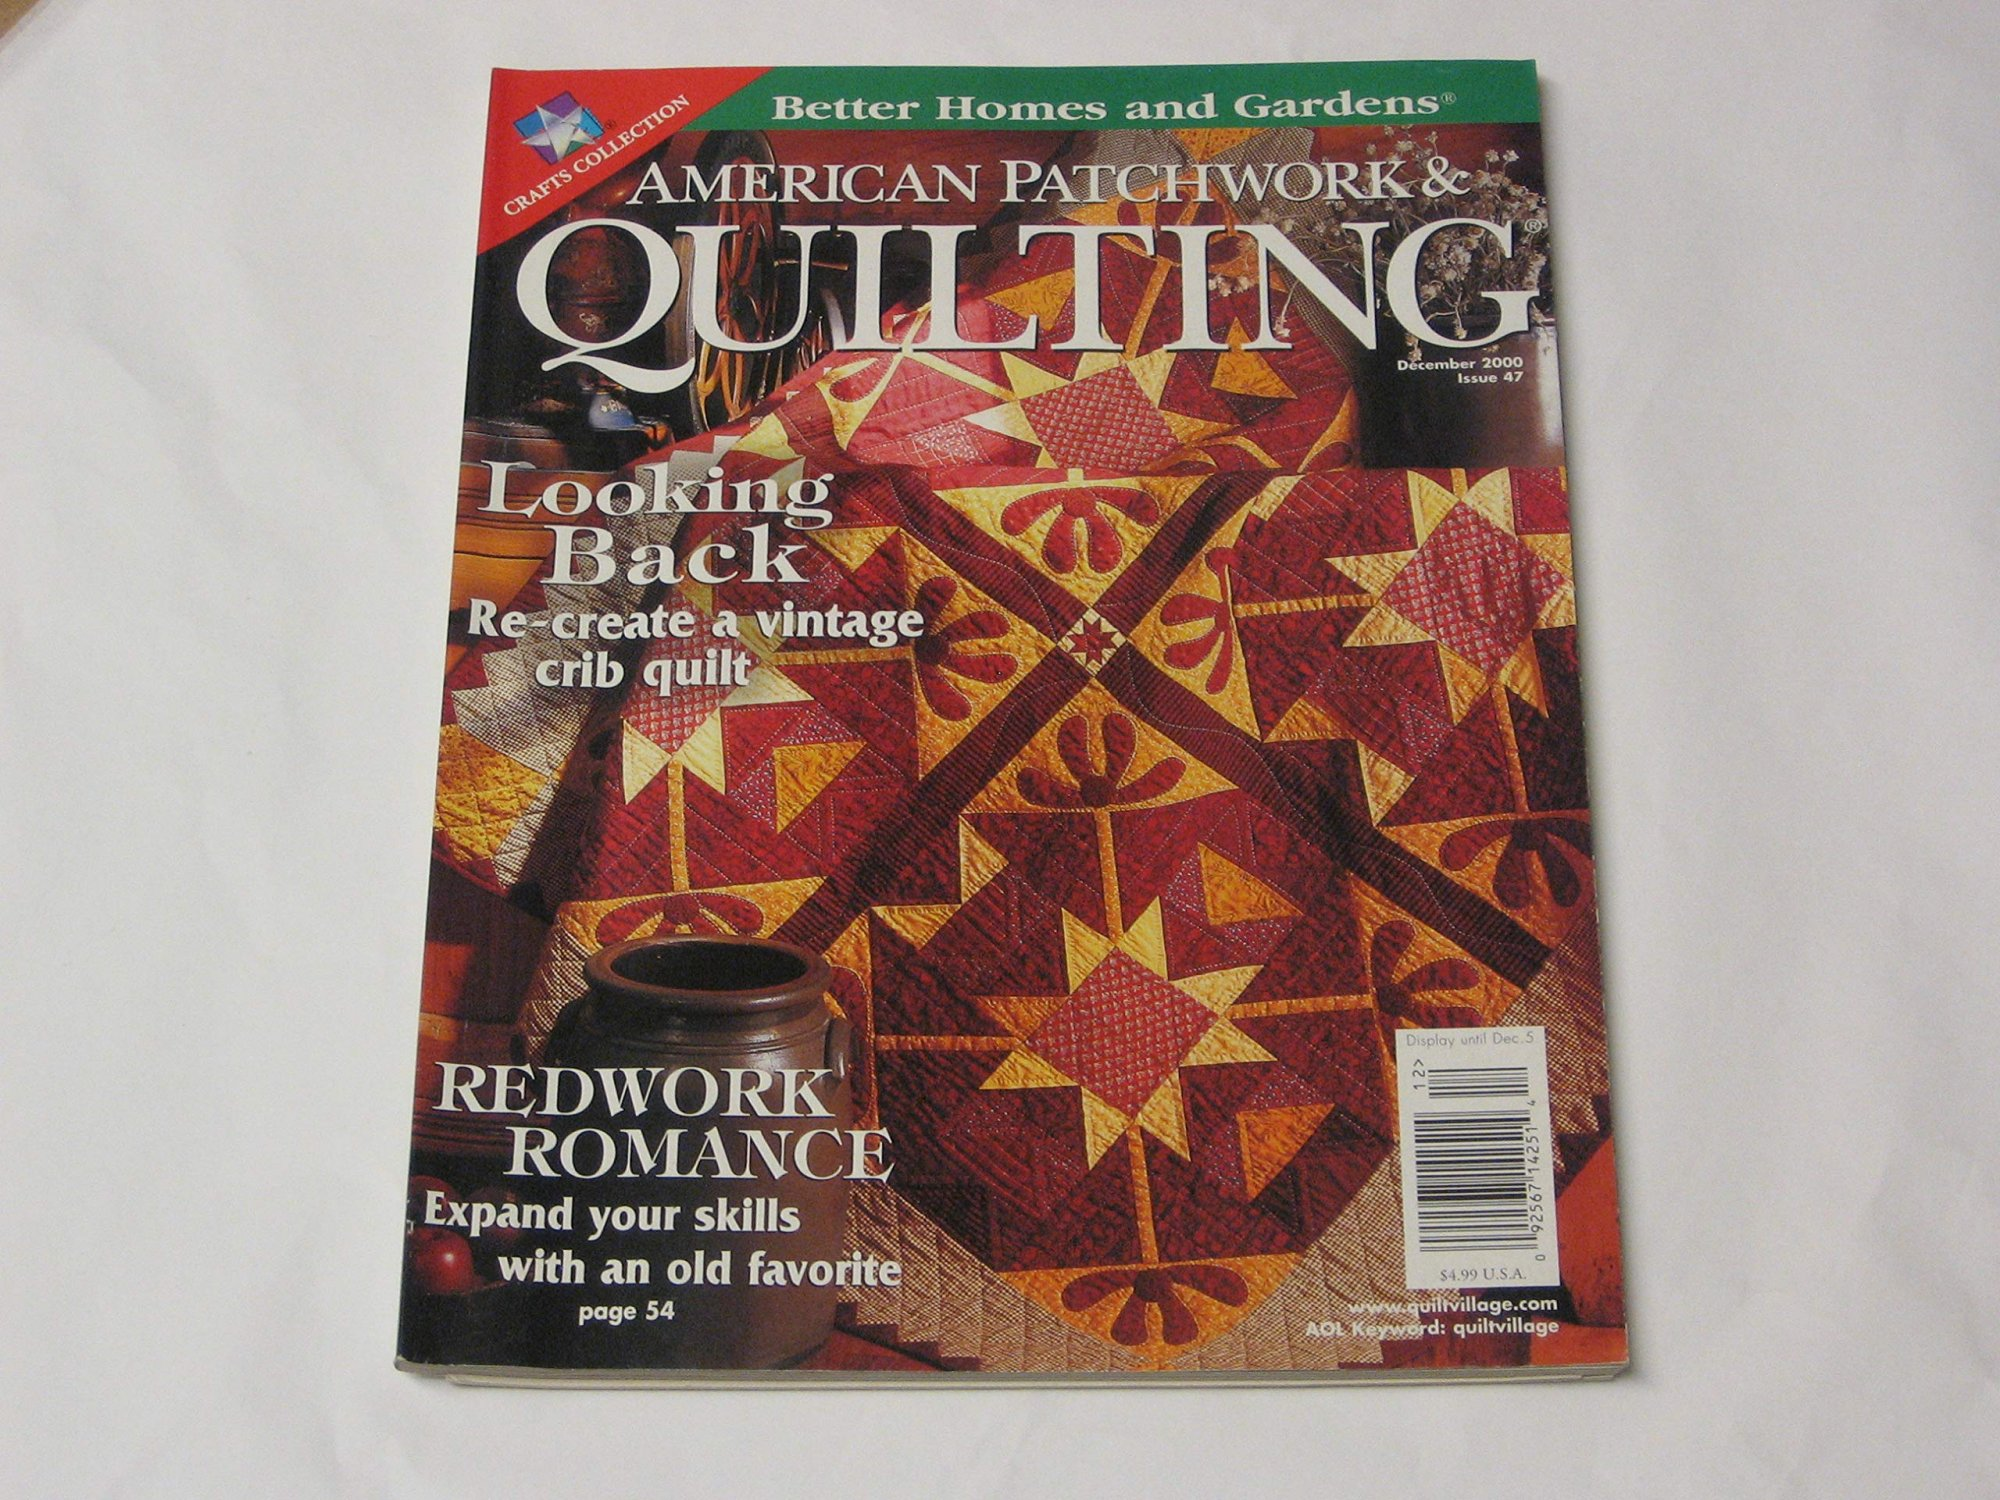 American Patchwork & Quilting December 2000 Issue 47